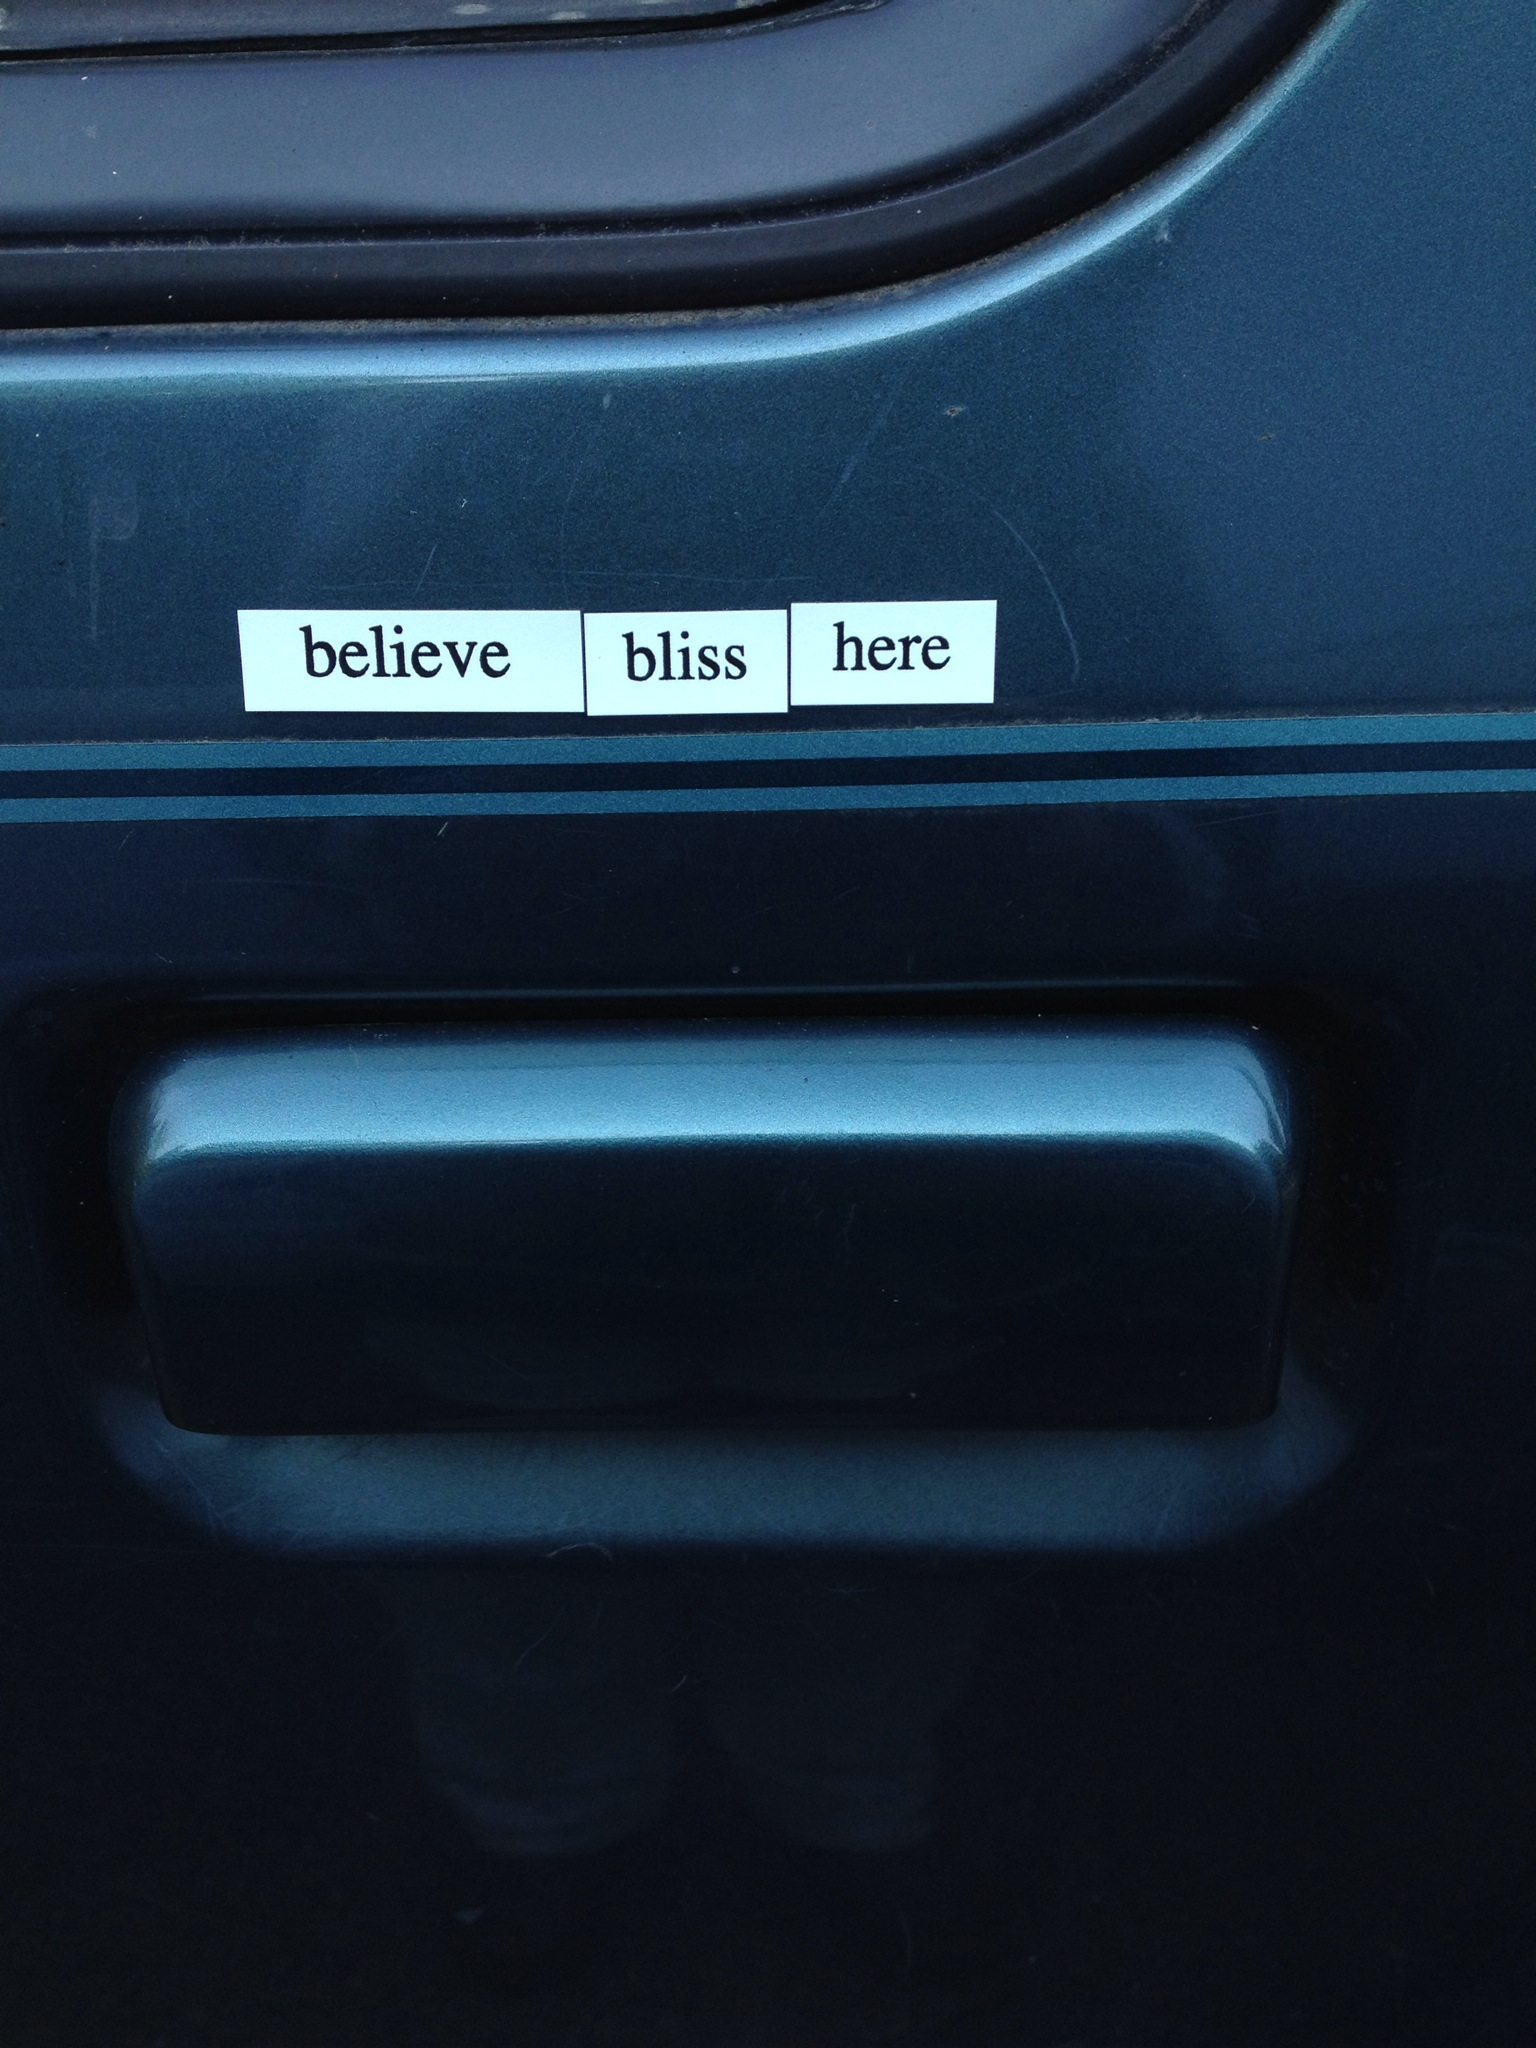 uplifting magnetic poetry for your car door by Aimee Cartier